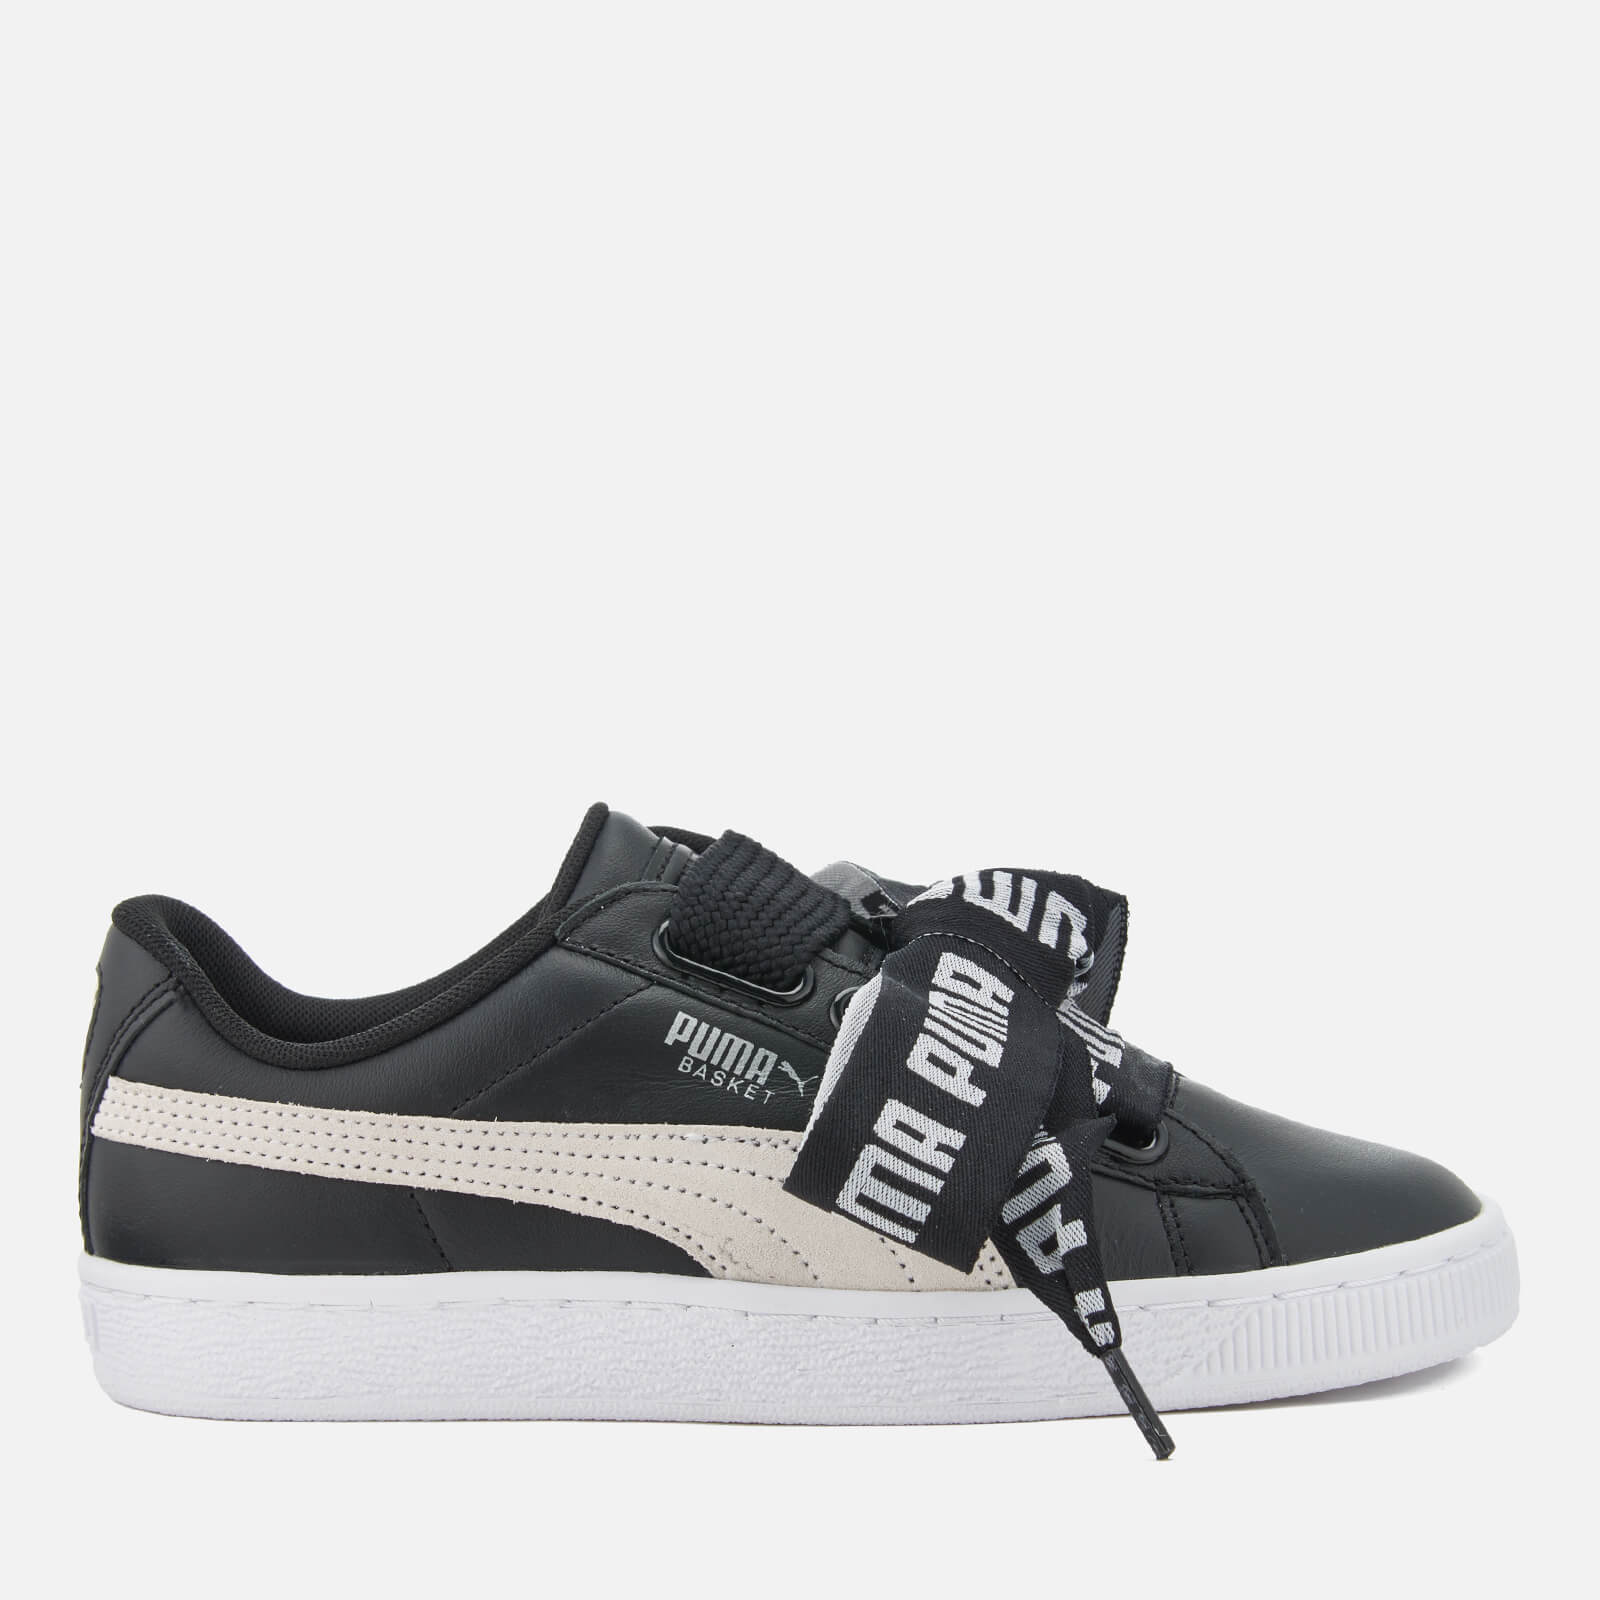 Basket Trainers Women's White Heart Puma Blackpuma OZuwkPiTX